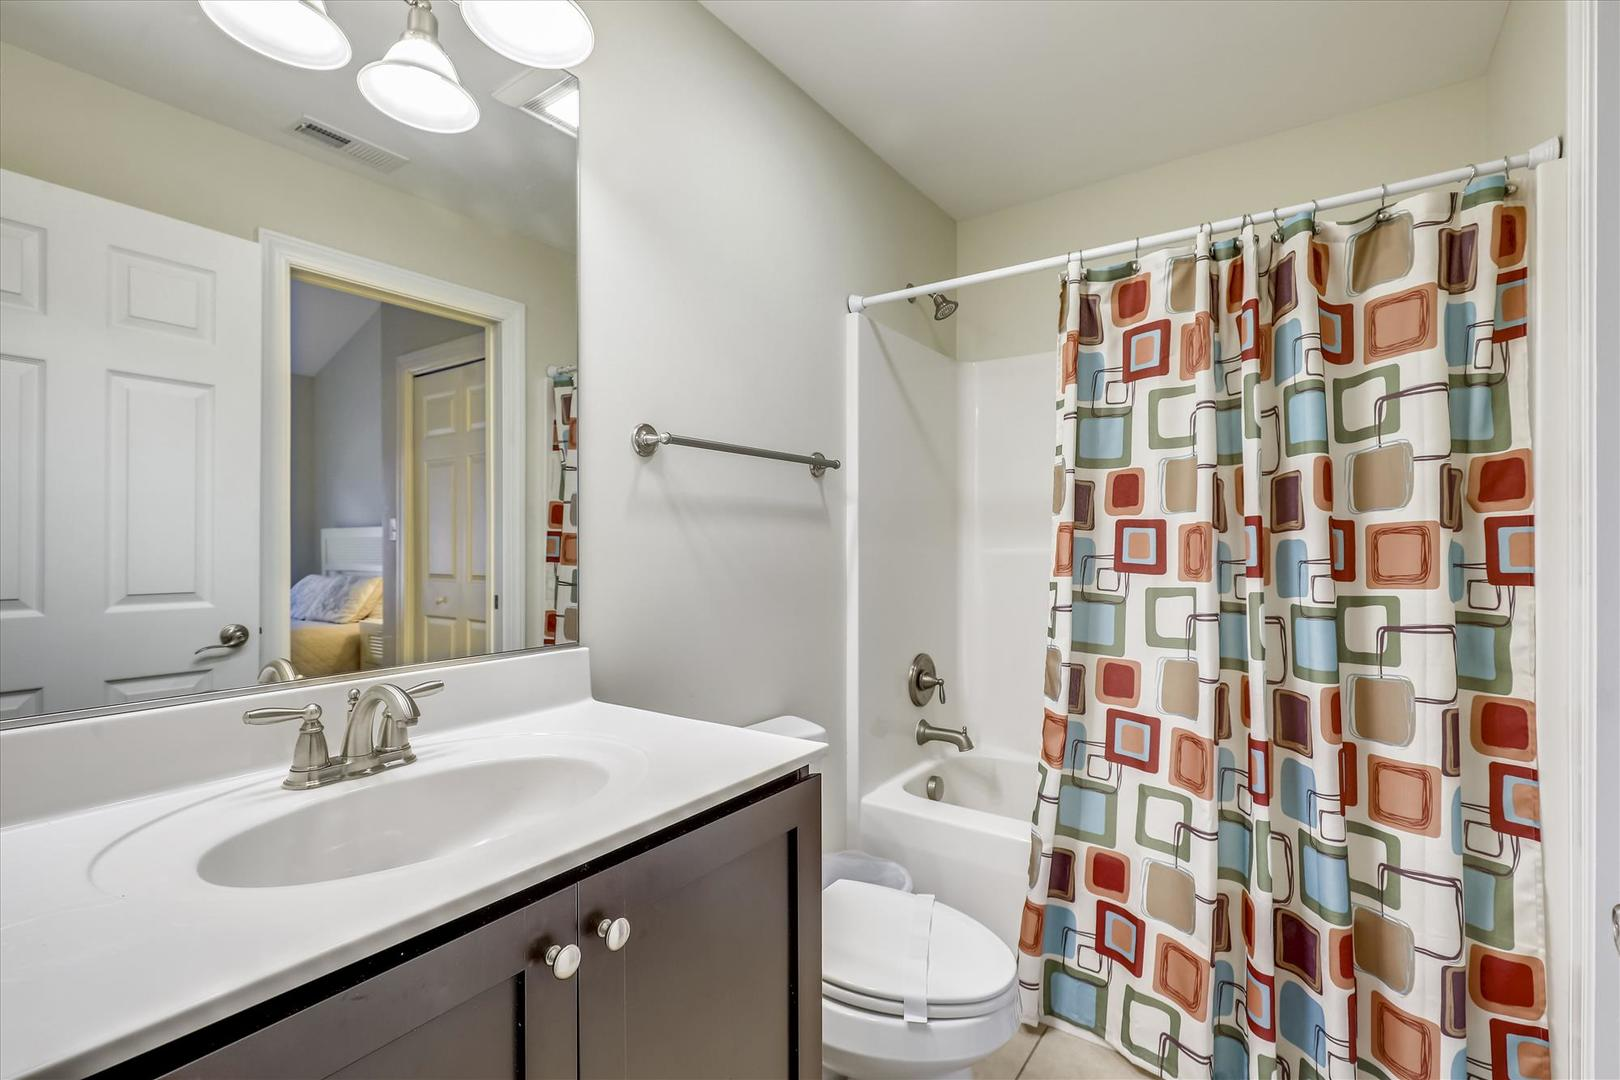 Sunburst 110 - Bathroom 2